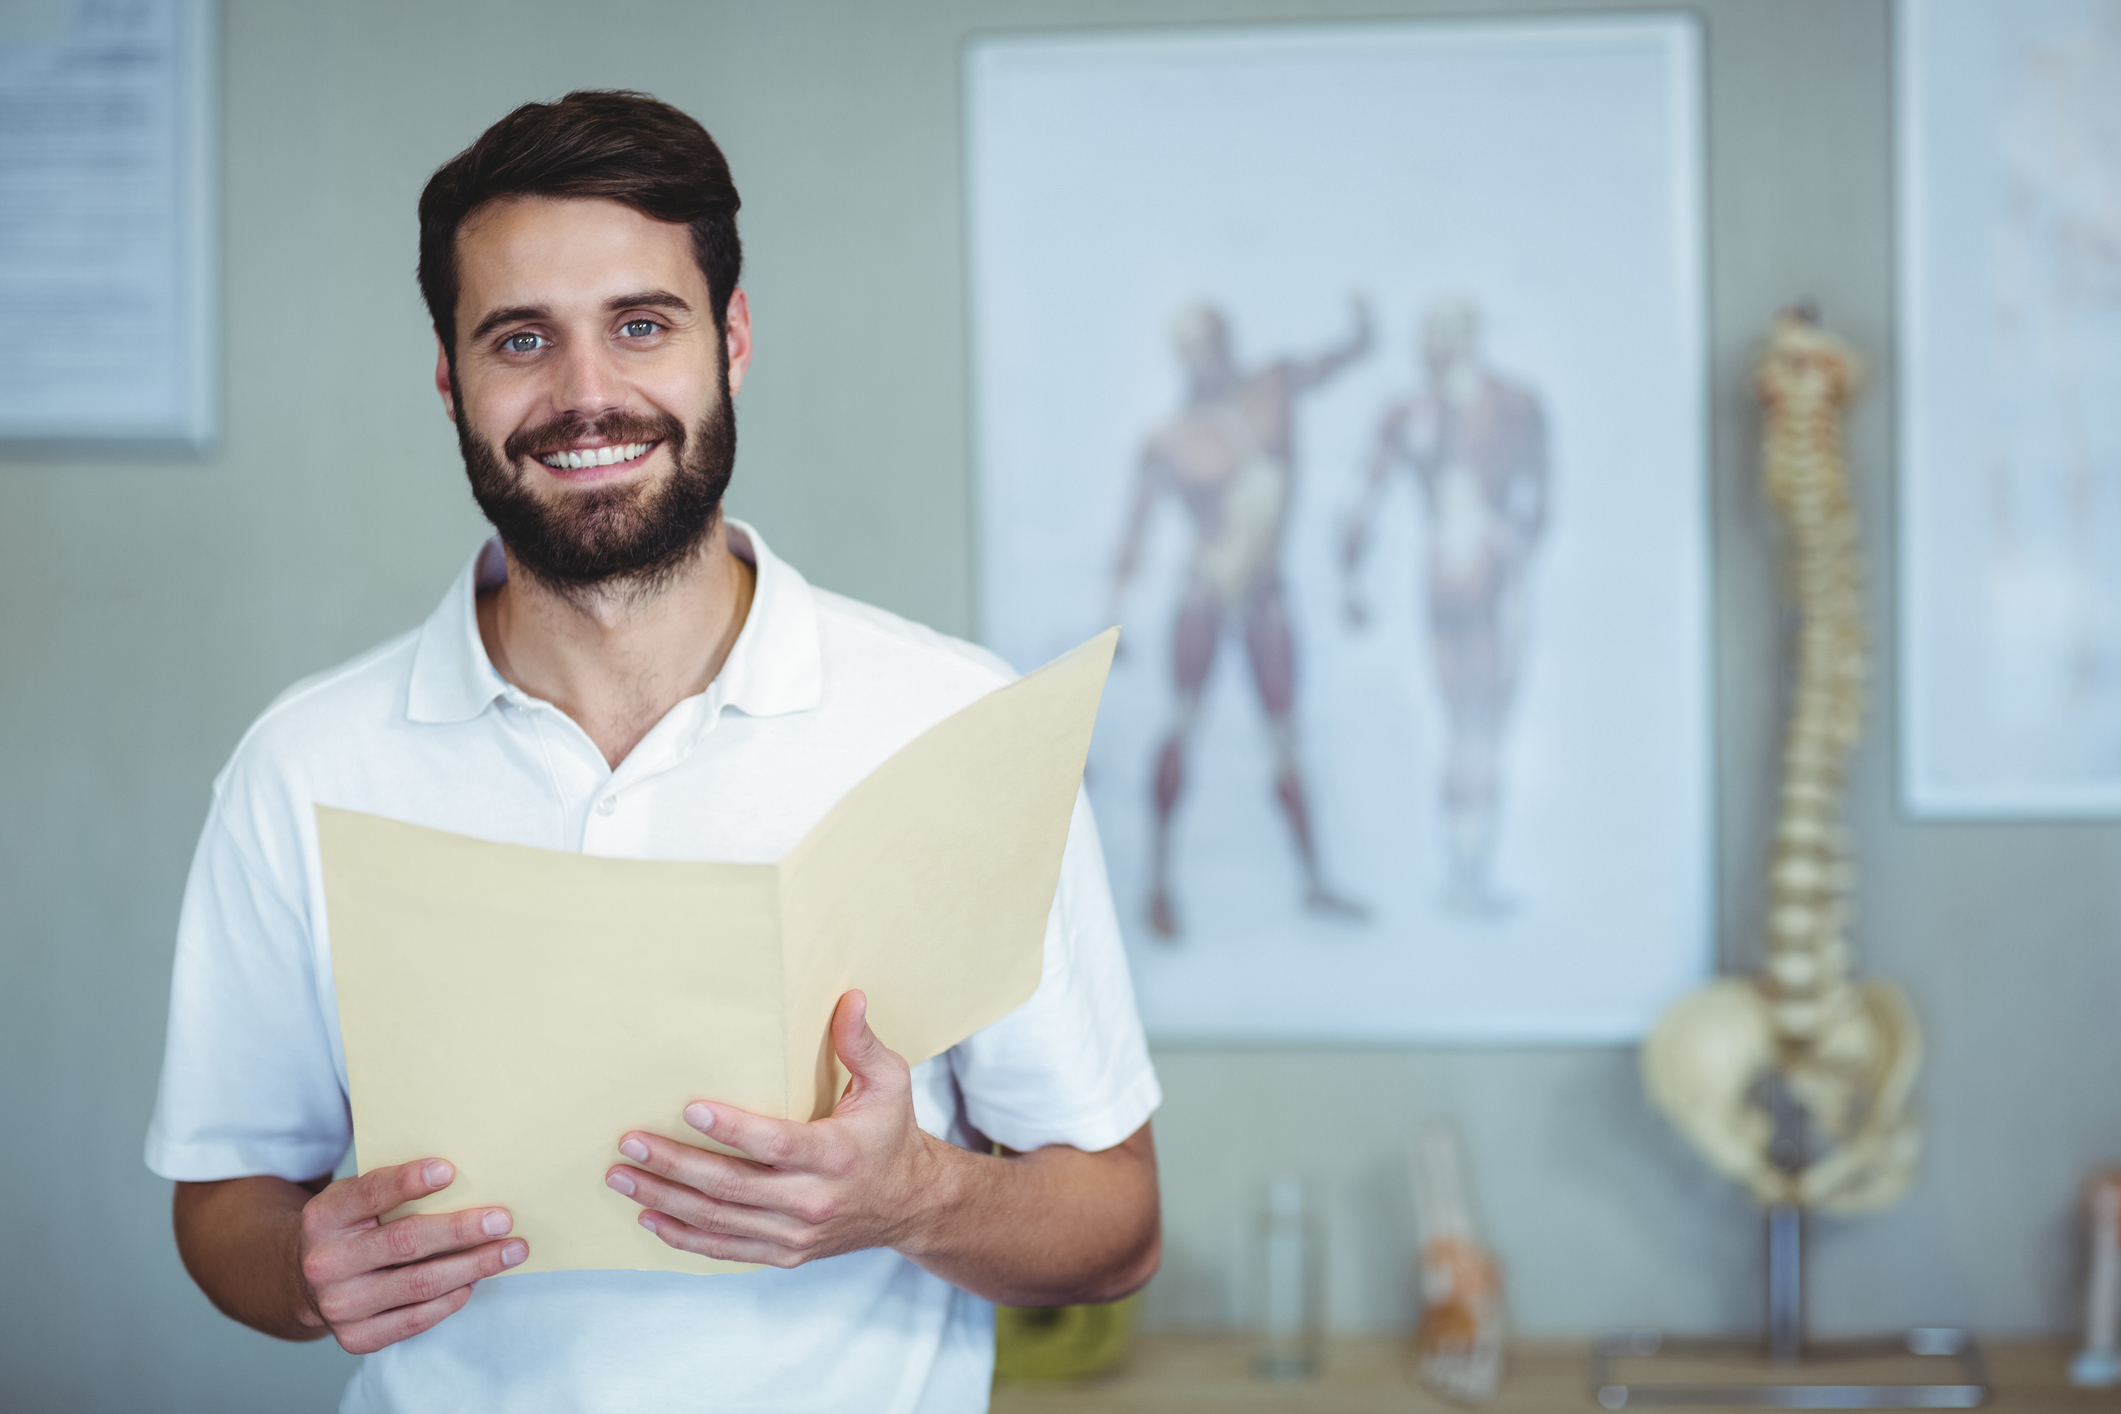 A physical therapist smiling while managing paperwork.